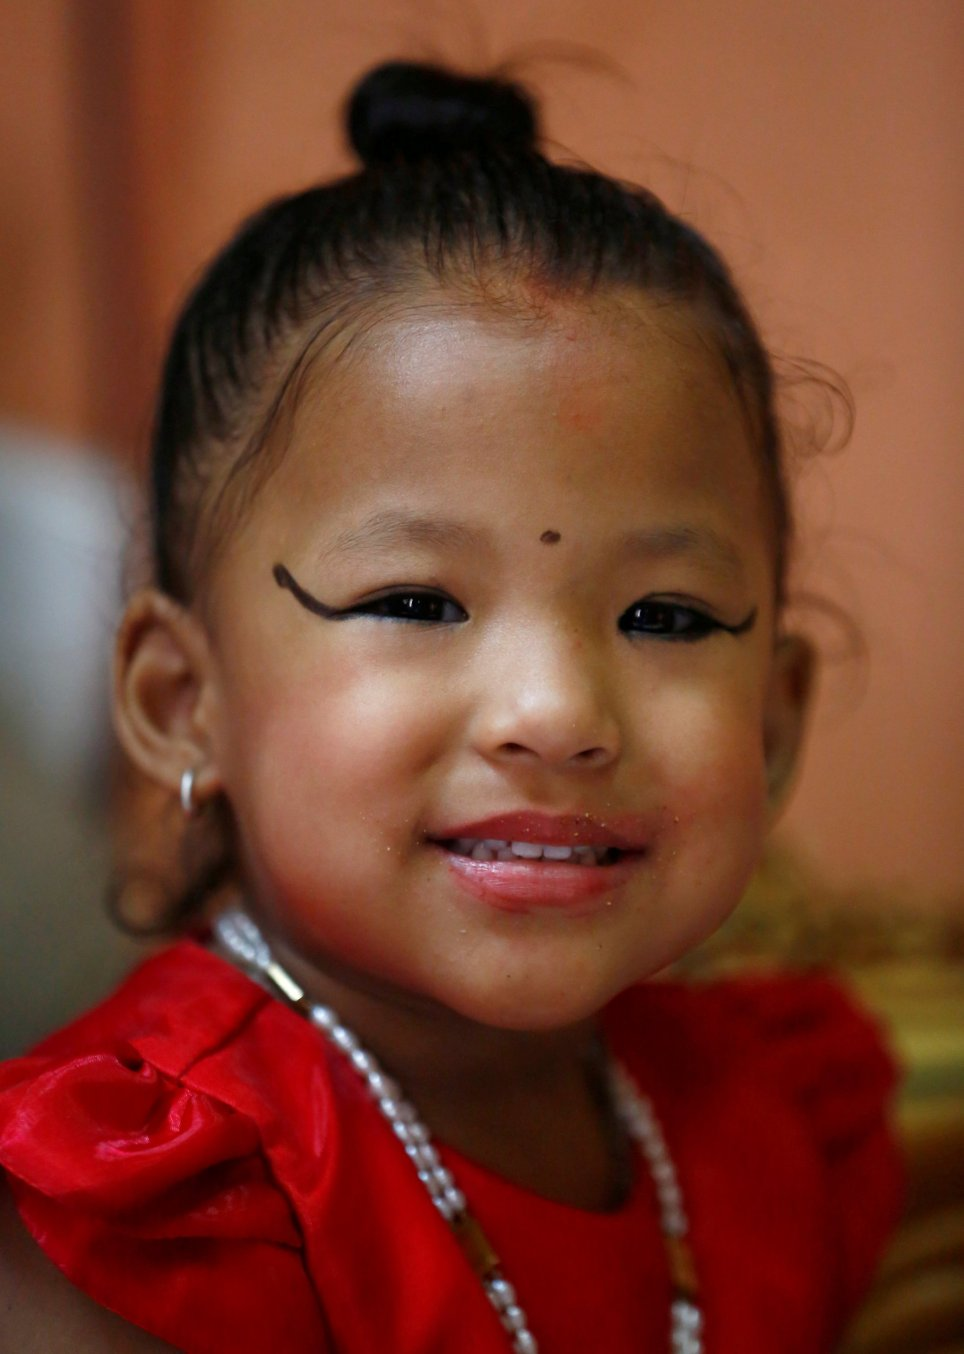 Newly appointed living goddess, three-year-old Kumari Trishna Shakya, smiles while being pictured before being taken to the Kumari house from her private residence in Kathmandu, Nepal September 28, 2017. Credit: Reuters